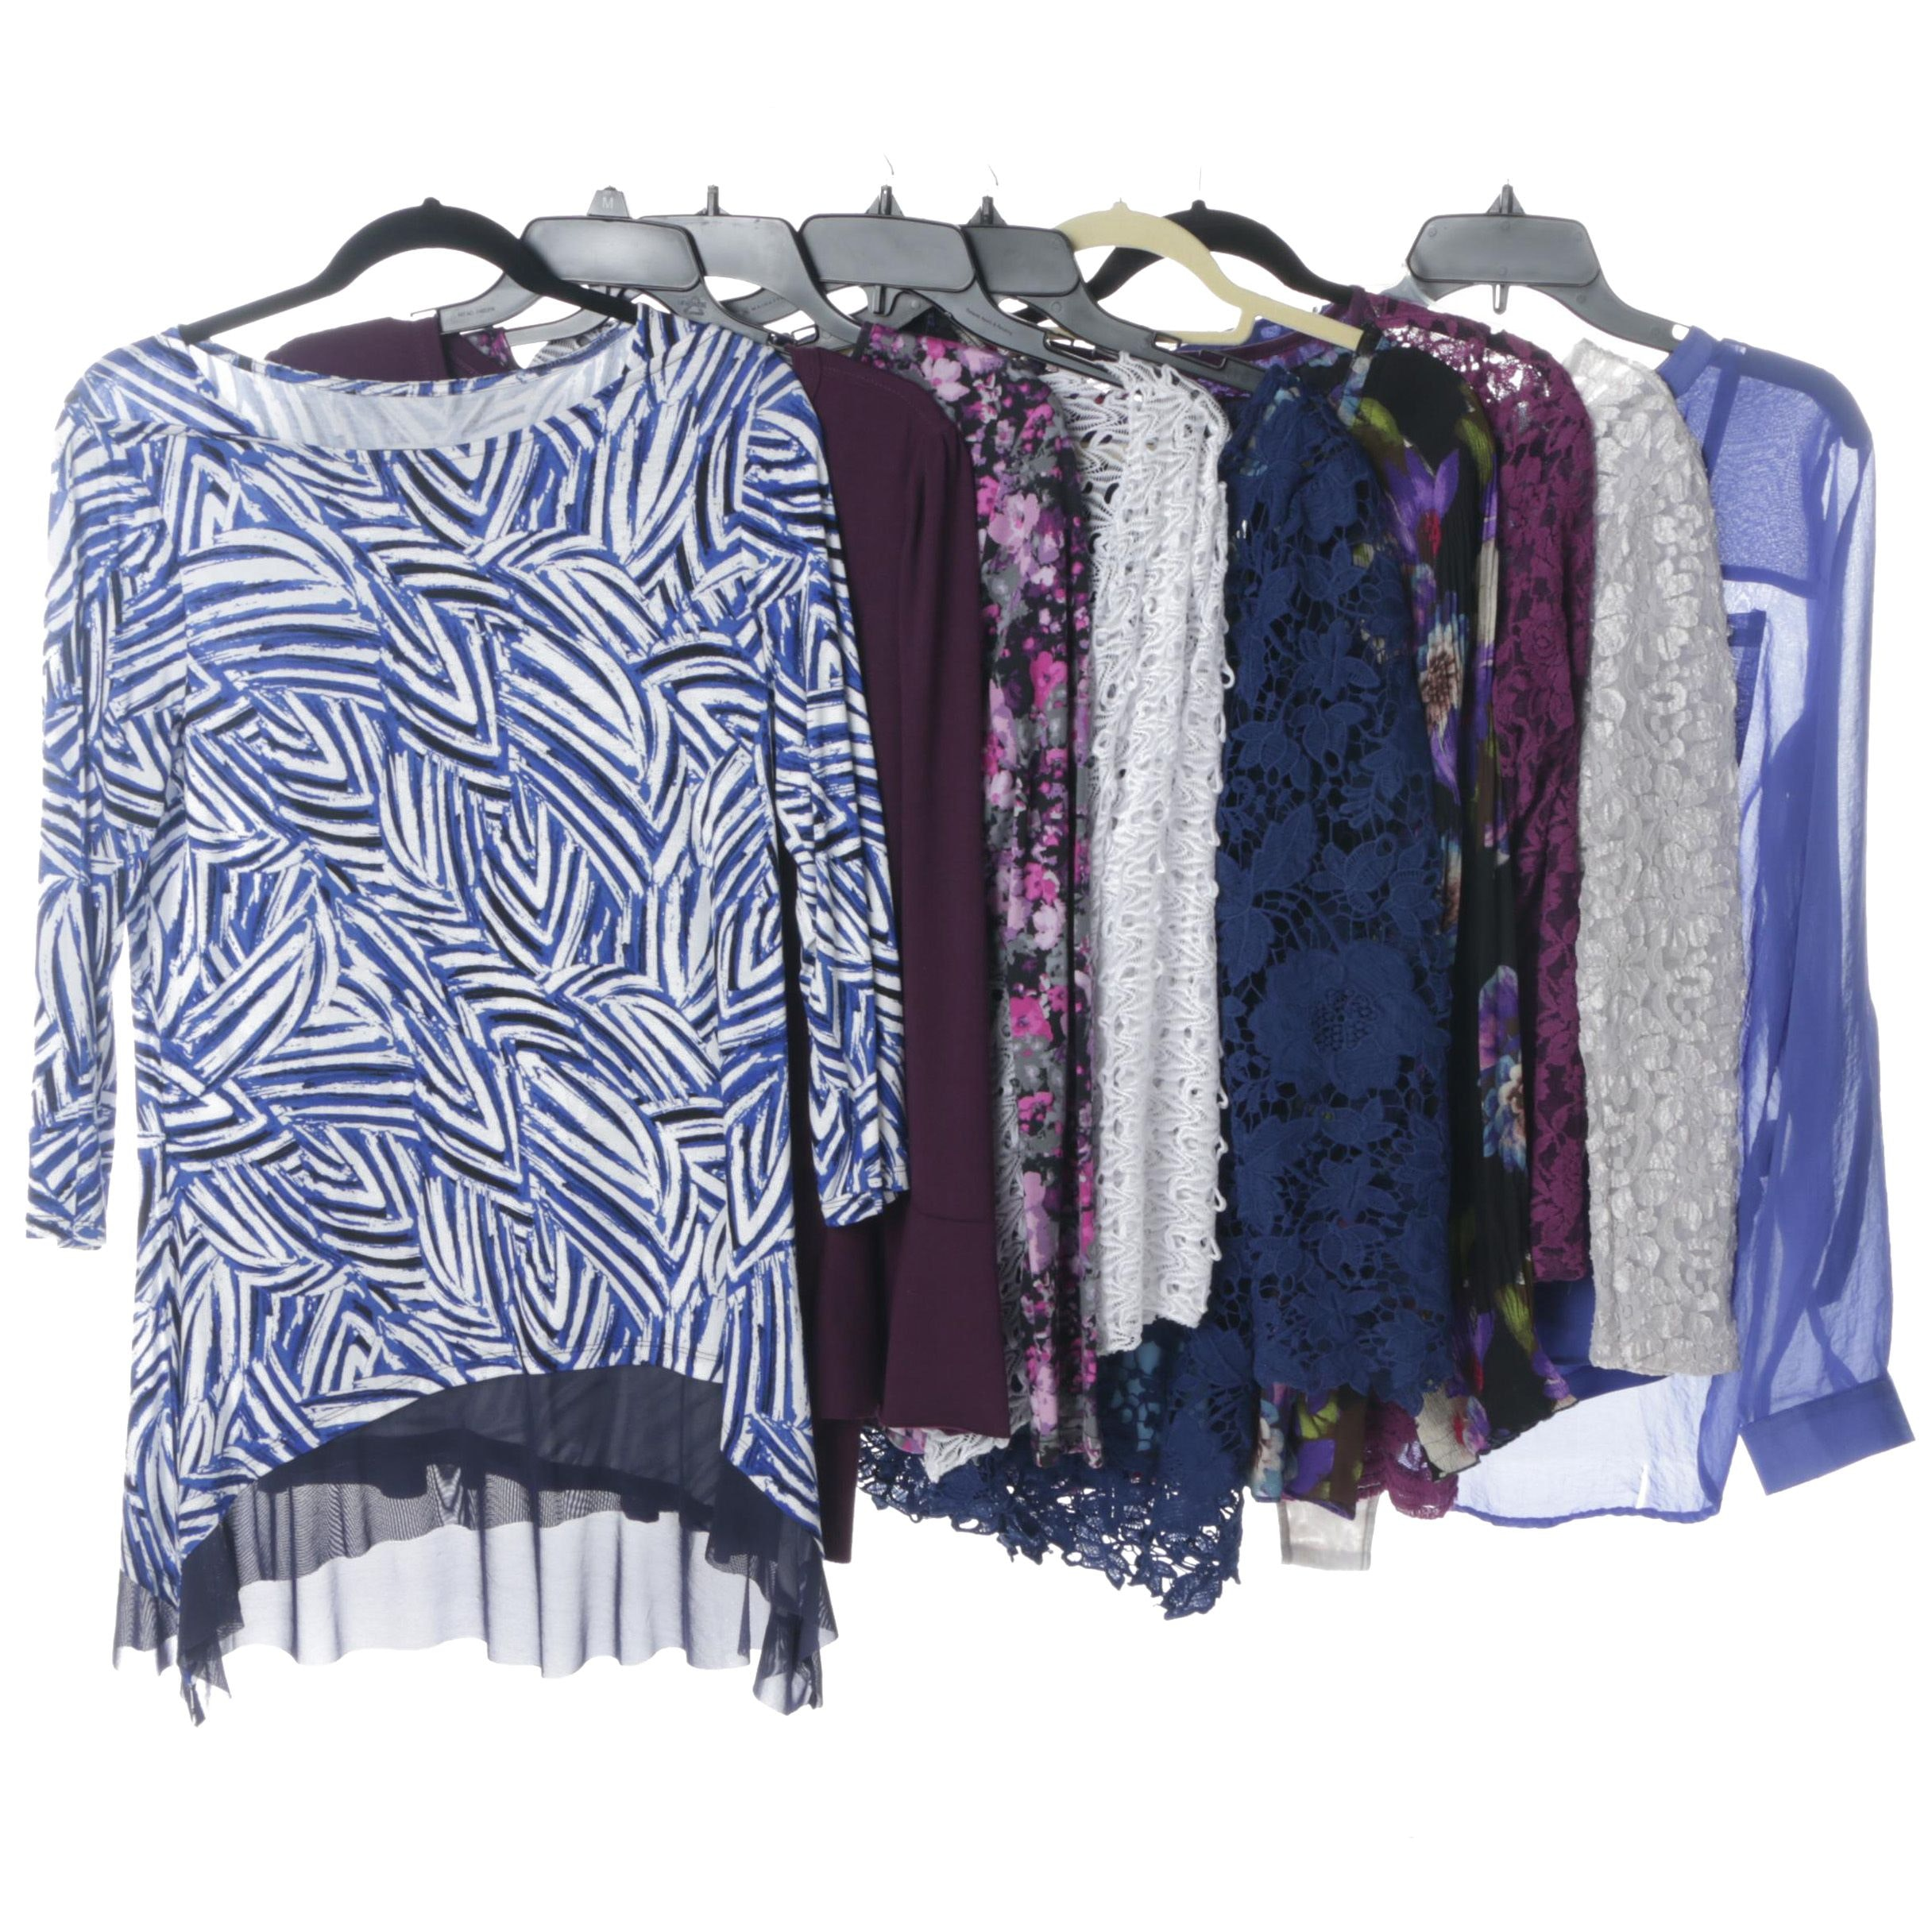 Women's Separates in Blue, Violet, Black and White